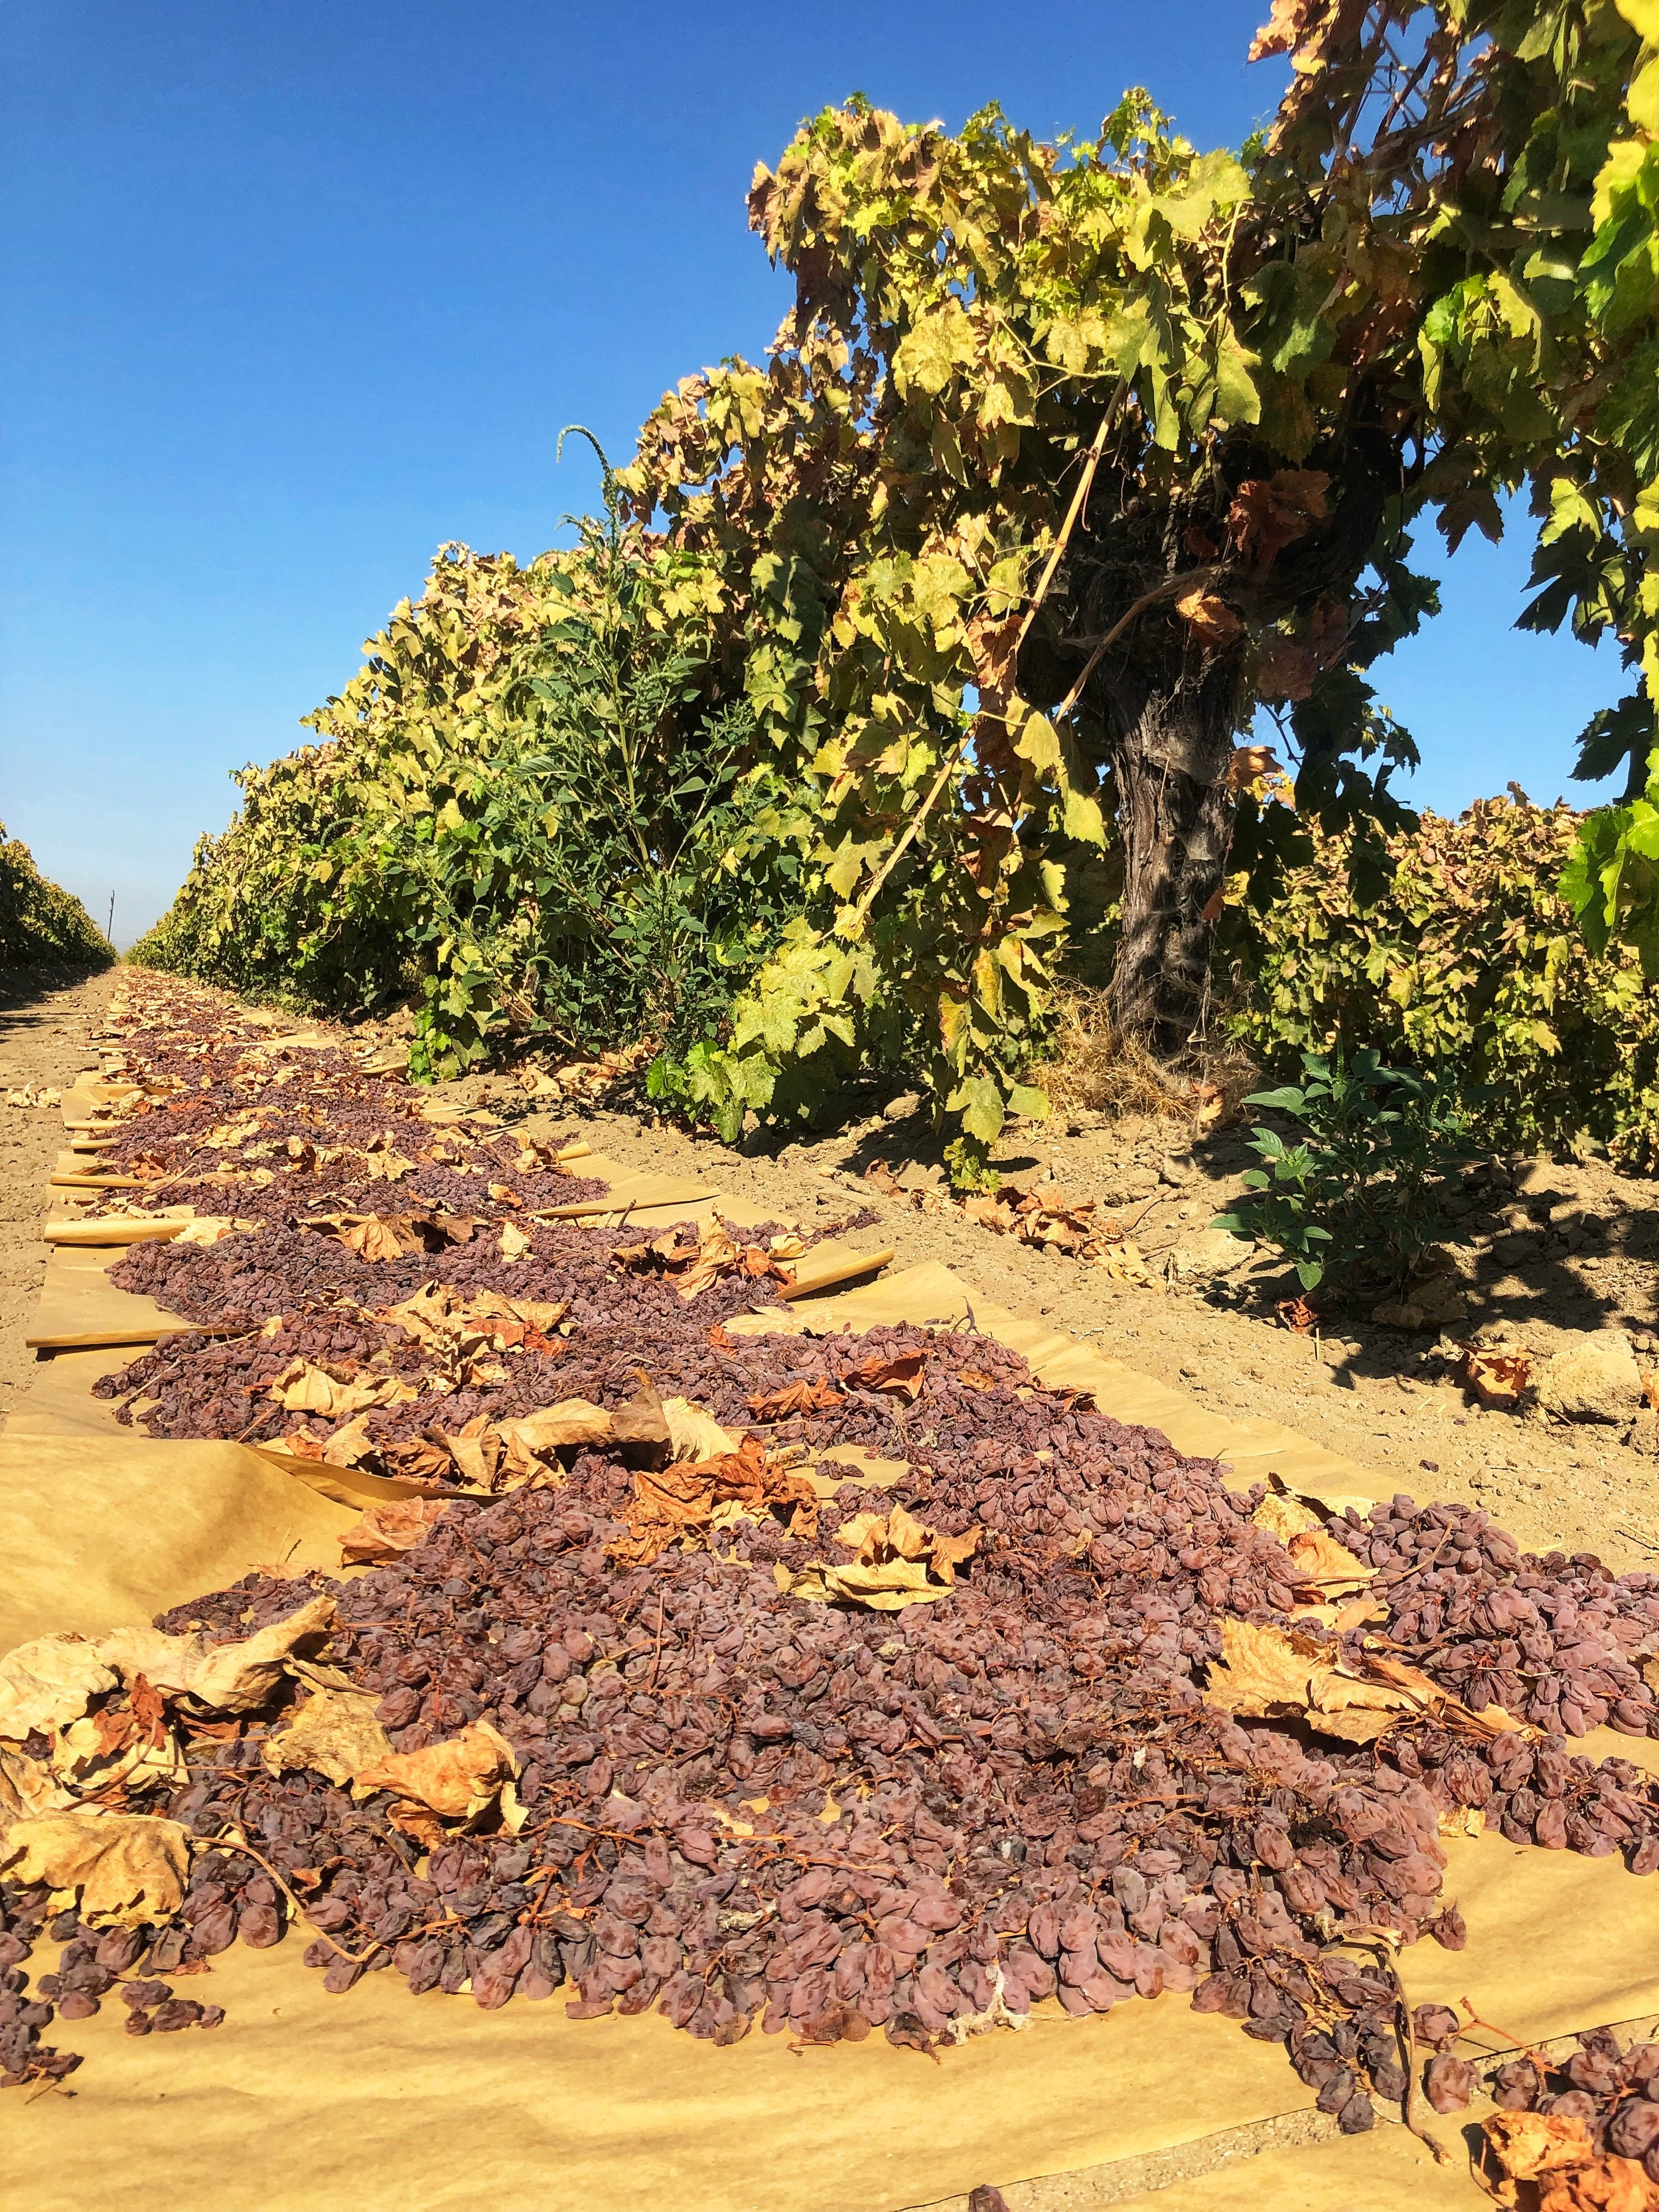 Where our food comes from: grapes have been hand picked to lay on paper trays and dry in the sun. www.ChefShayna.com